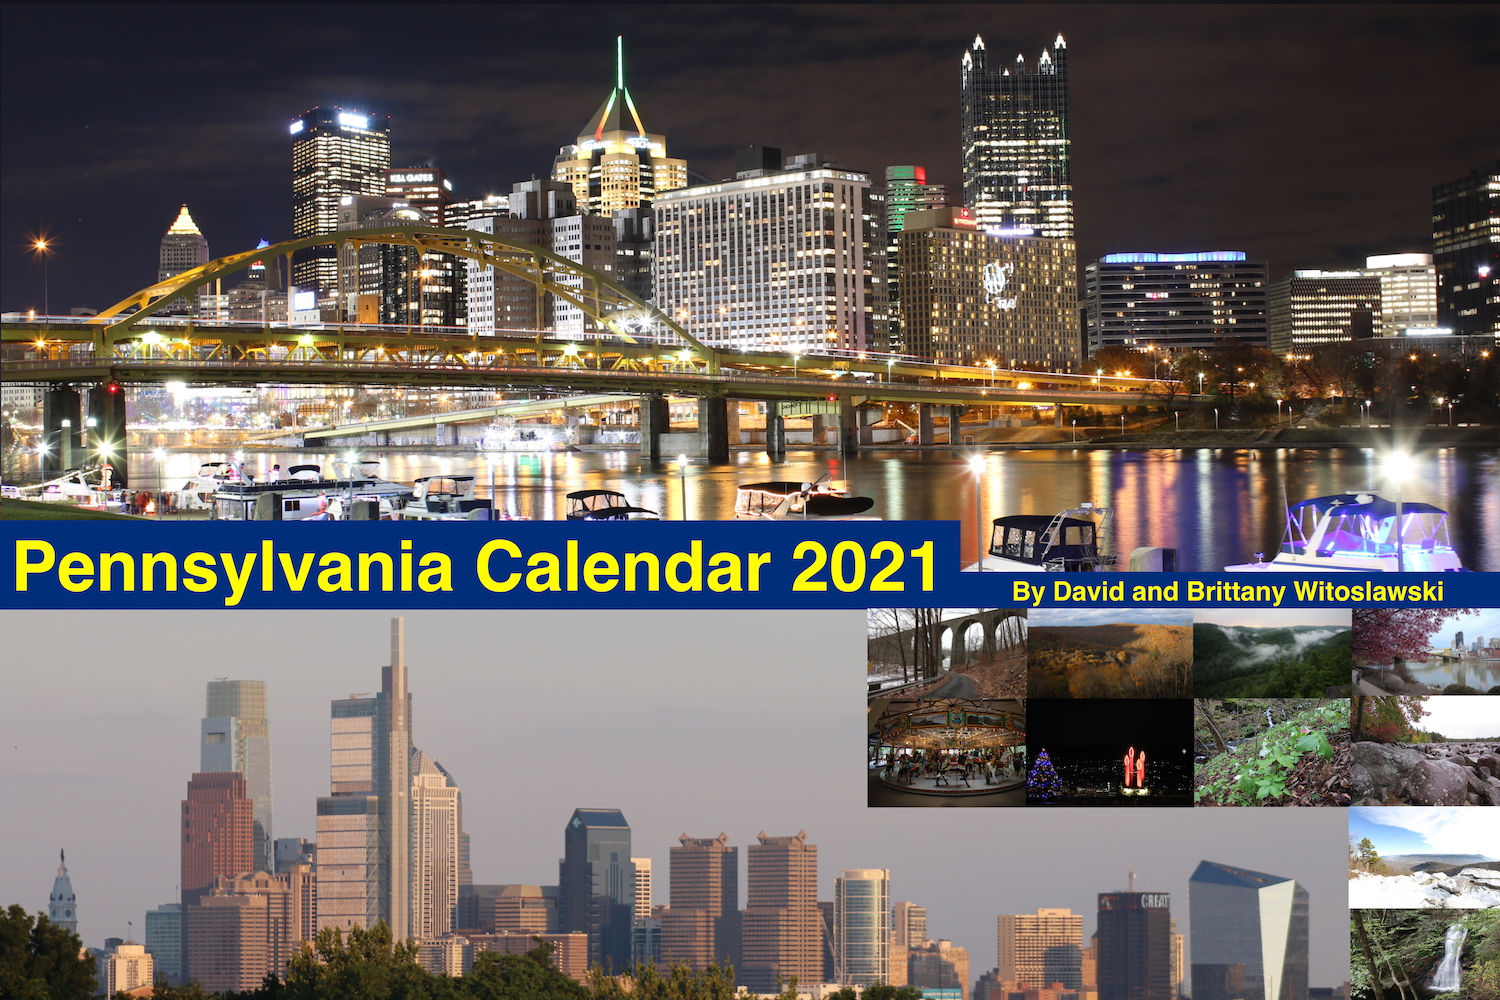 2021 Pennsylvania Calendar | Interesting Pennsylvania and Beyond